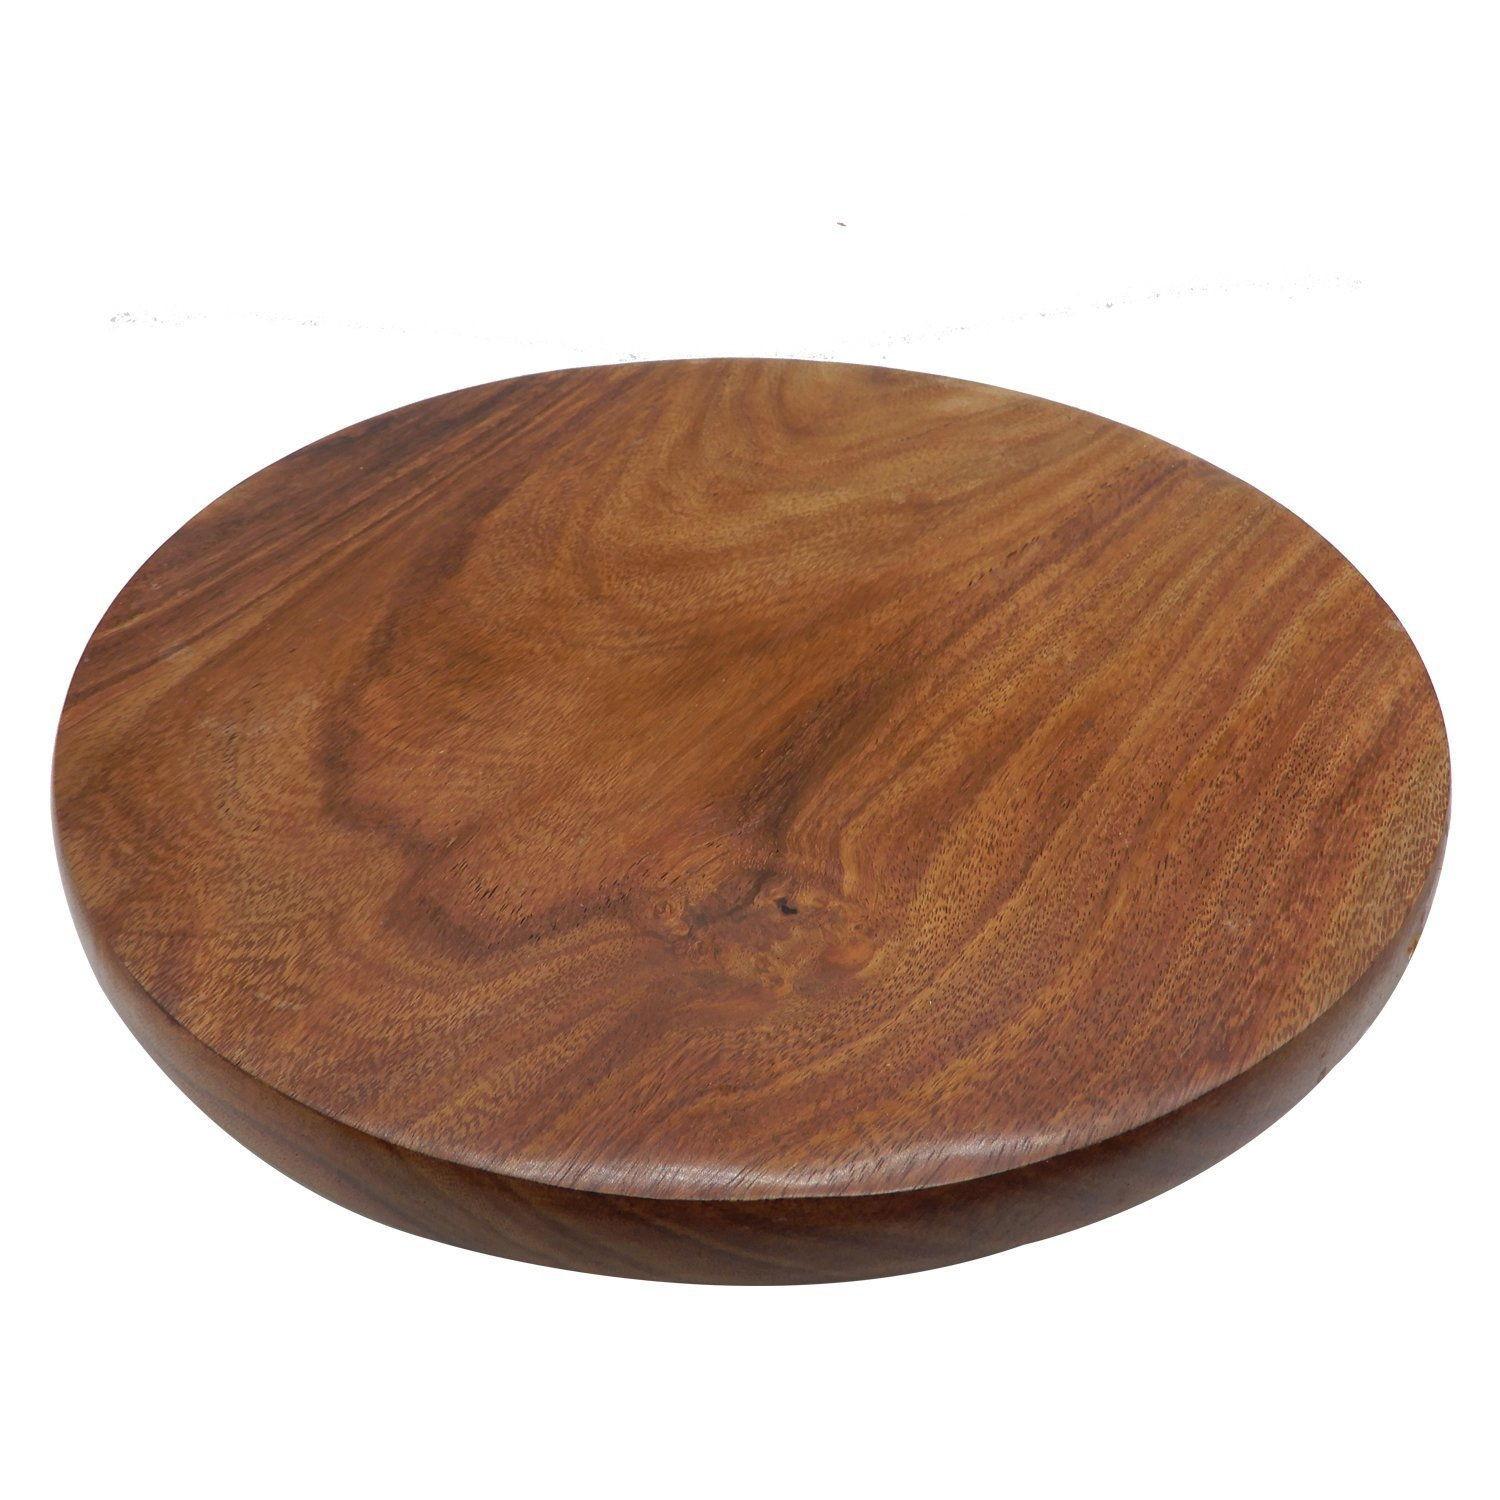 WhopperIndia Handmade Wooden Round Serving Board Perfect for Making Chapati and Roti Maker Daily Useful Kitchen Utensil 11 X 11 Inch